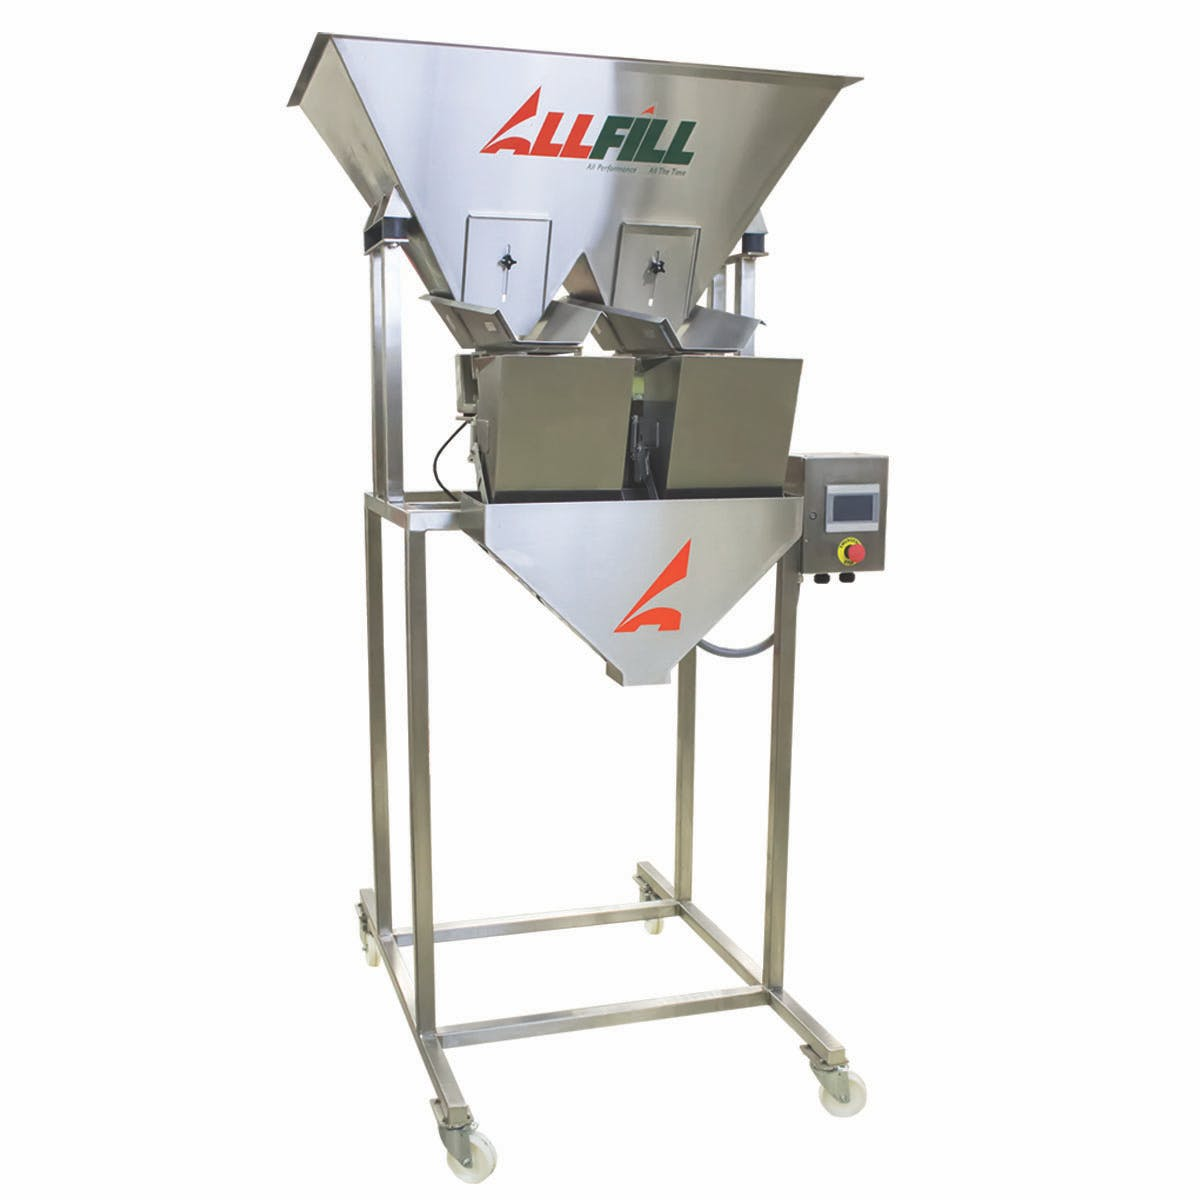 All-Fill Vibratory Filler Scales Net weight filler sold by Package Devices LLC